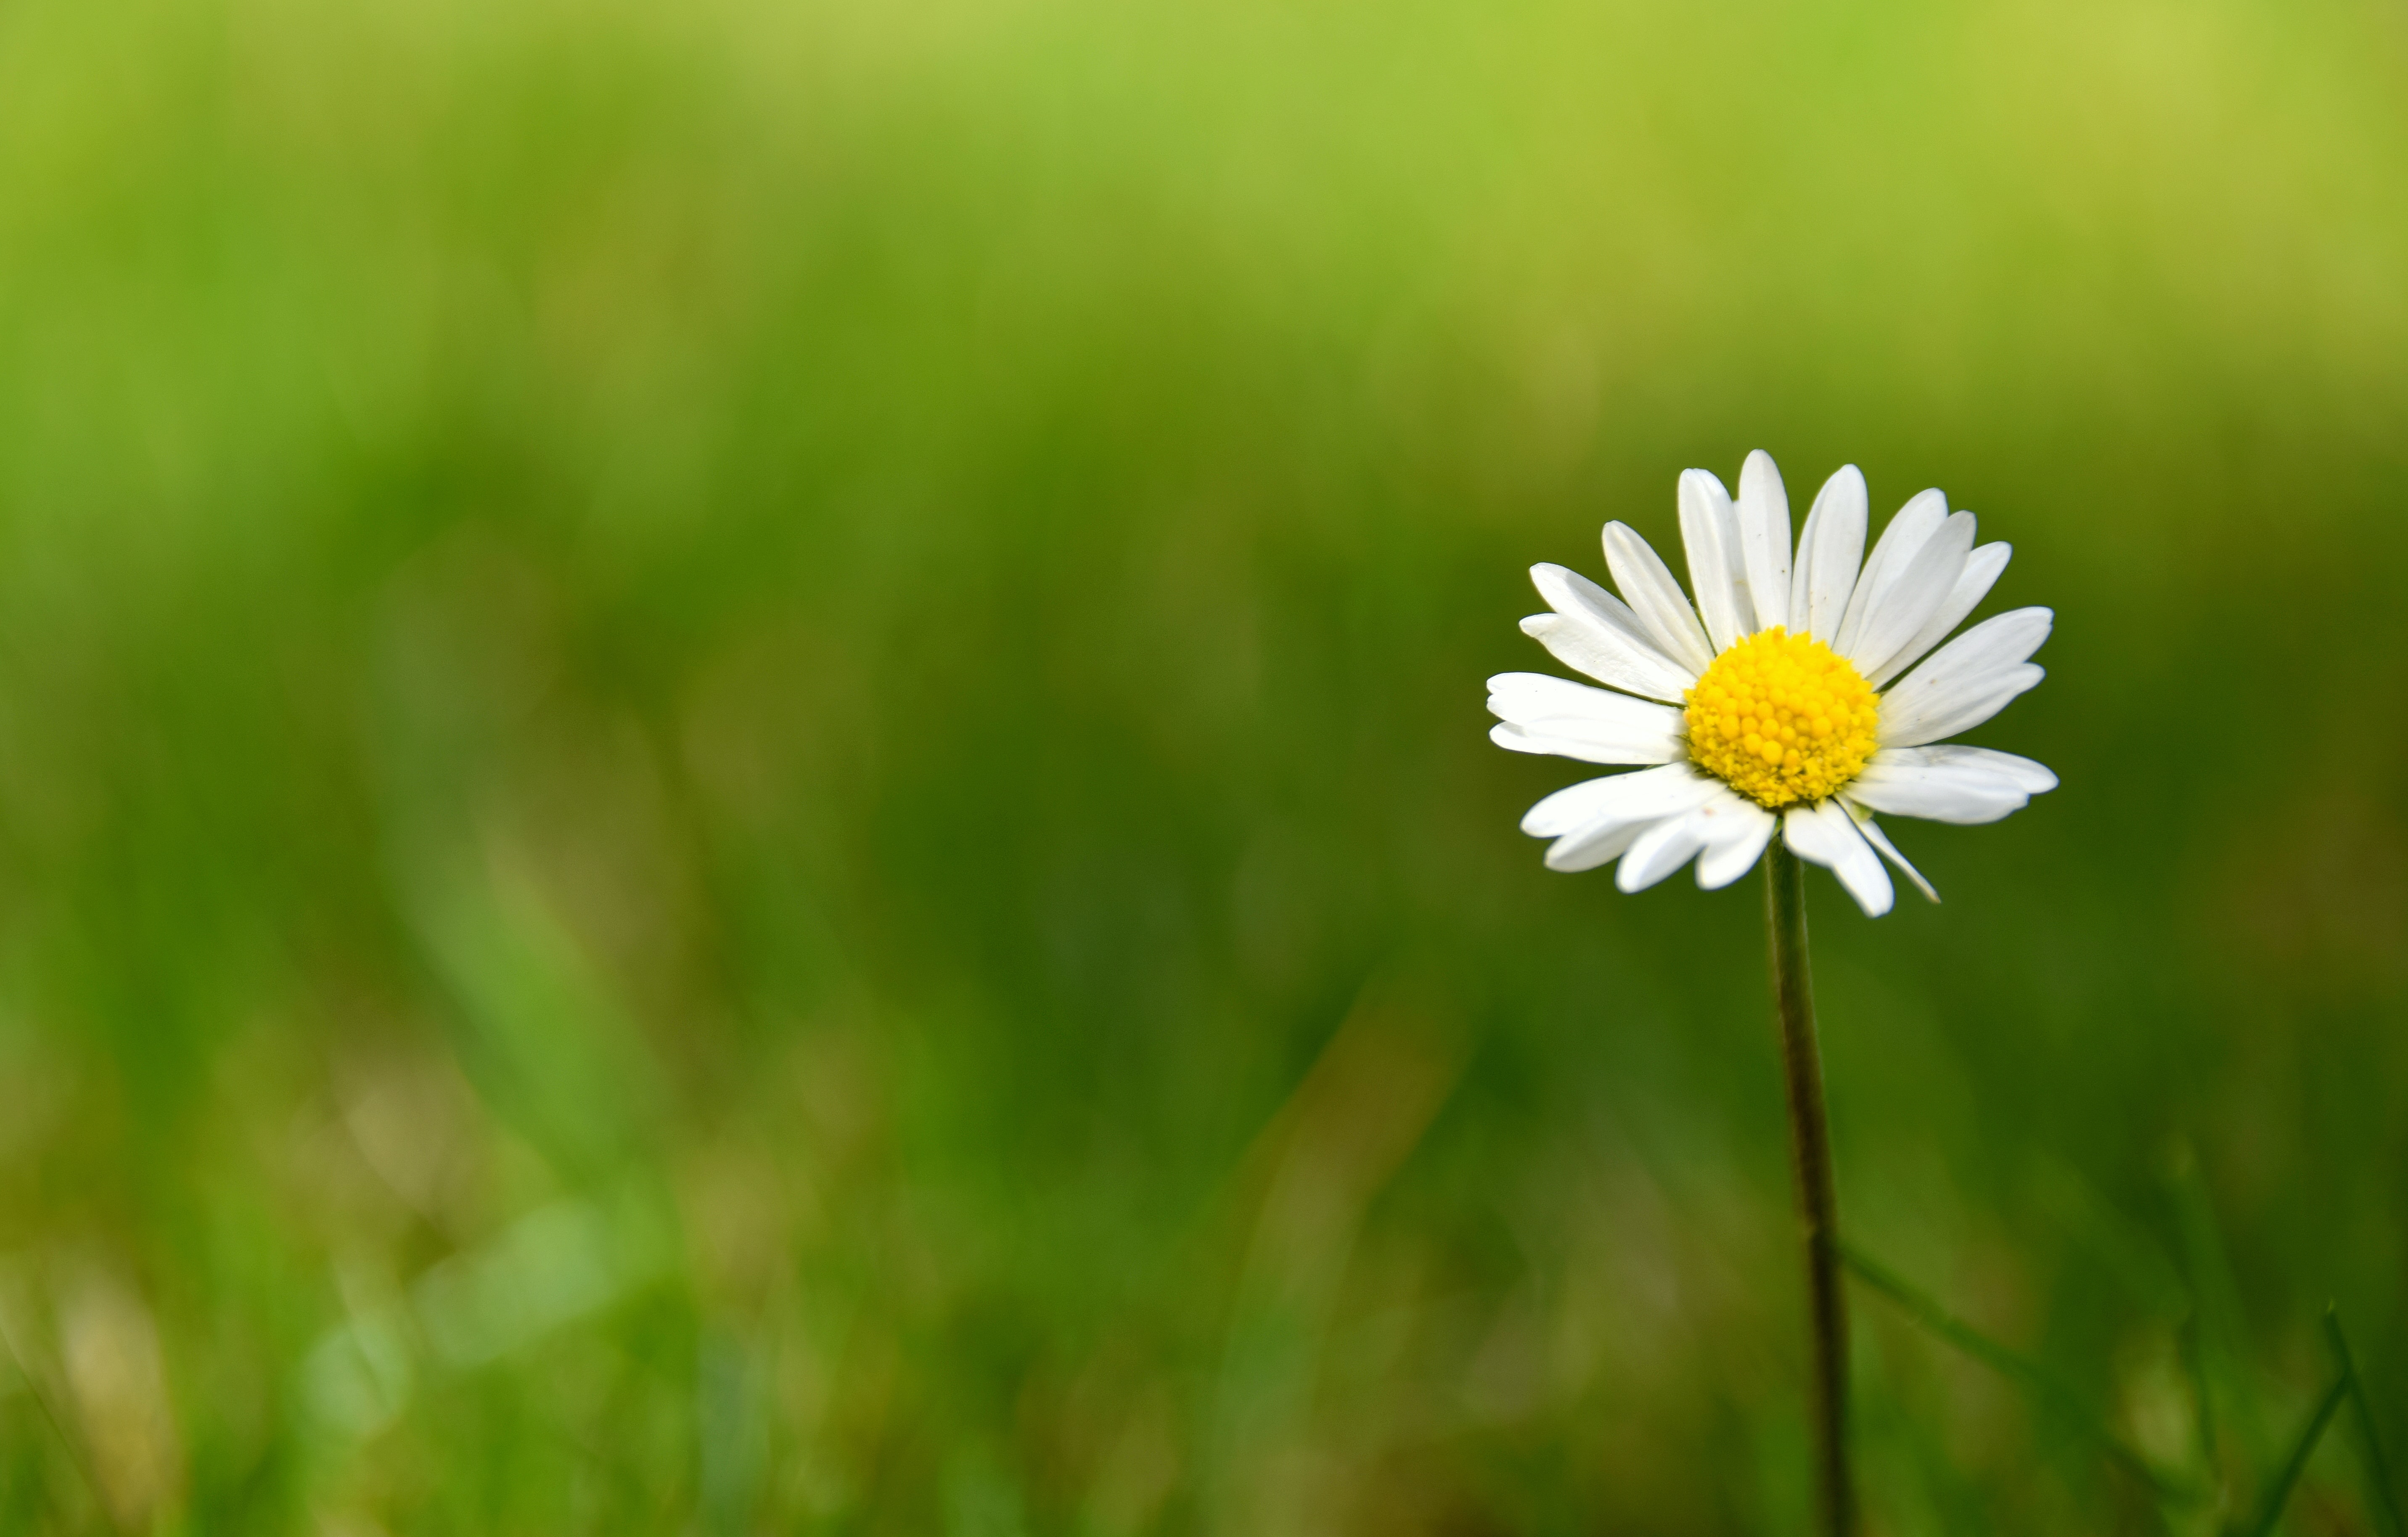 Single daisy grows in a green grassy field